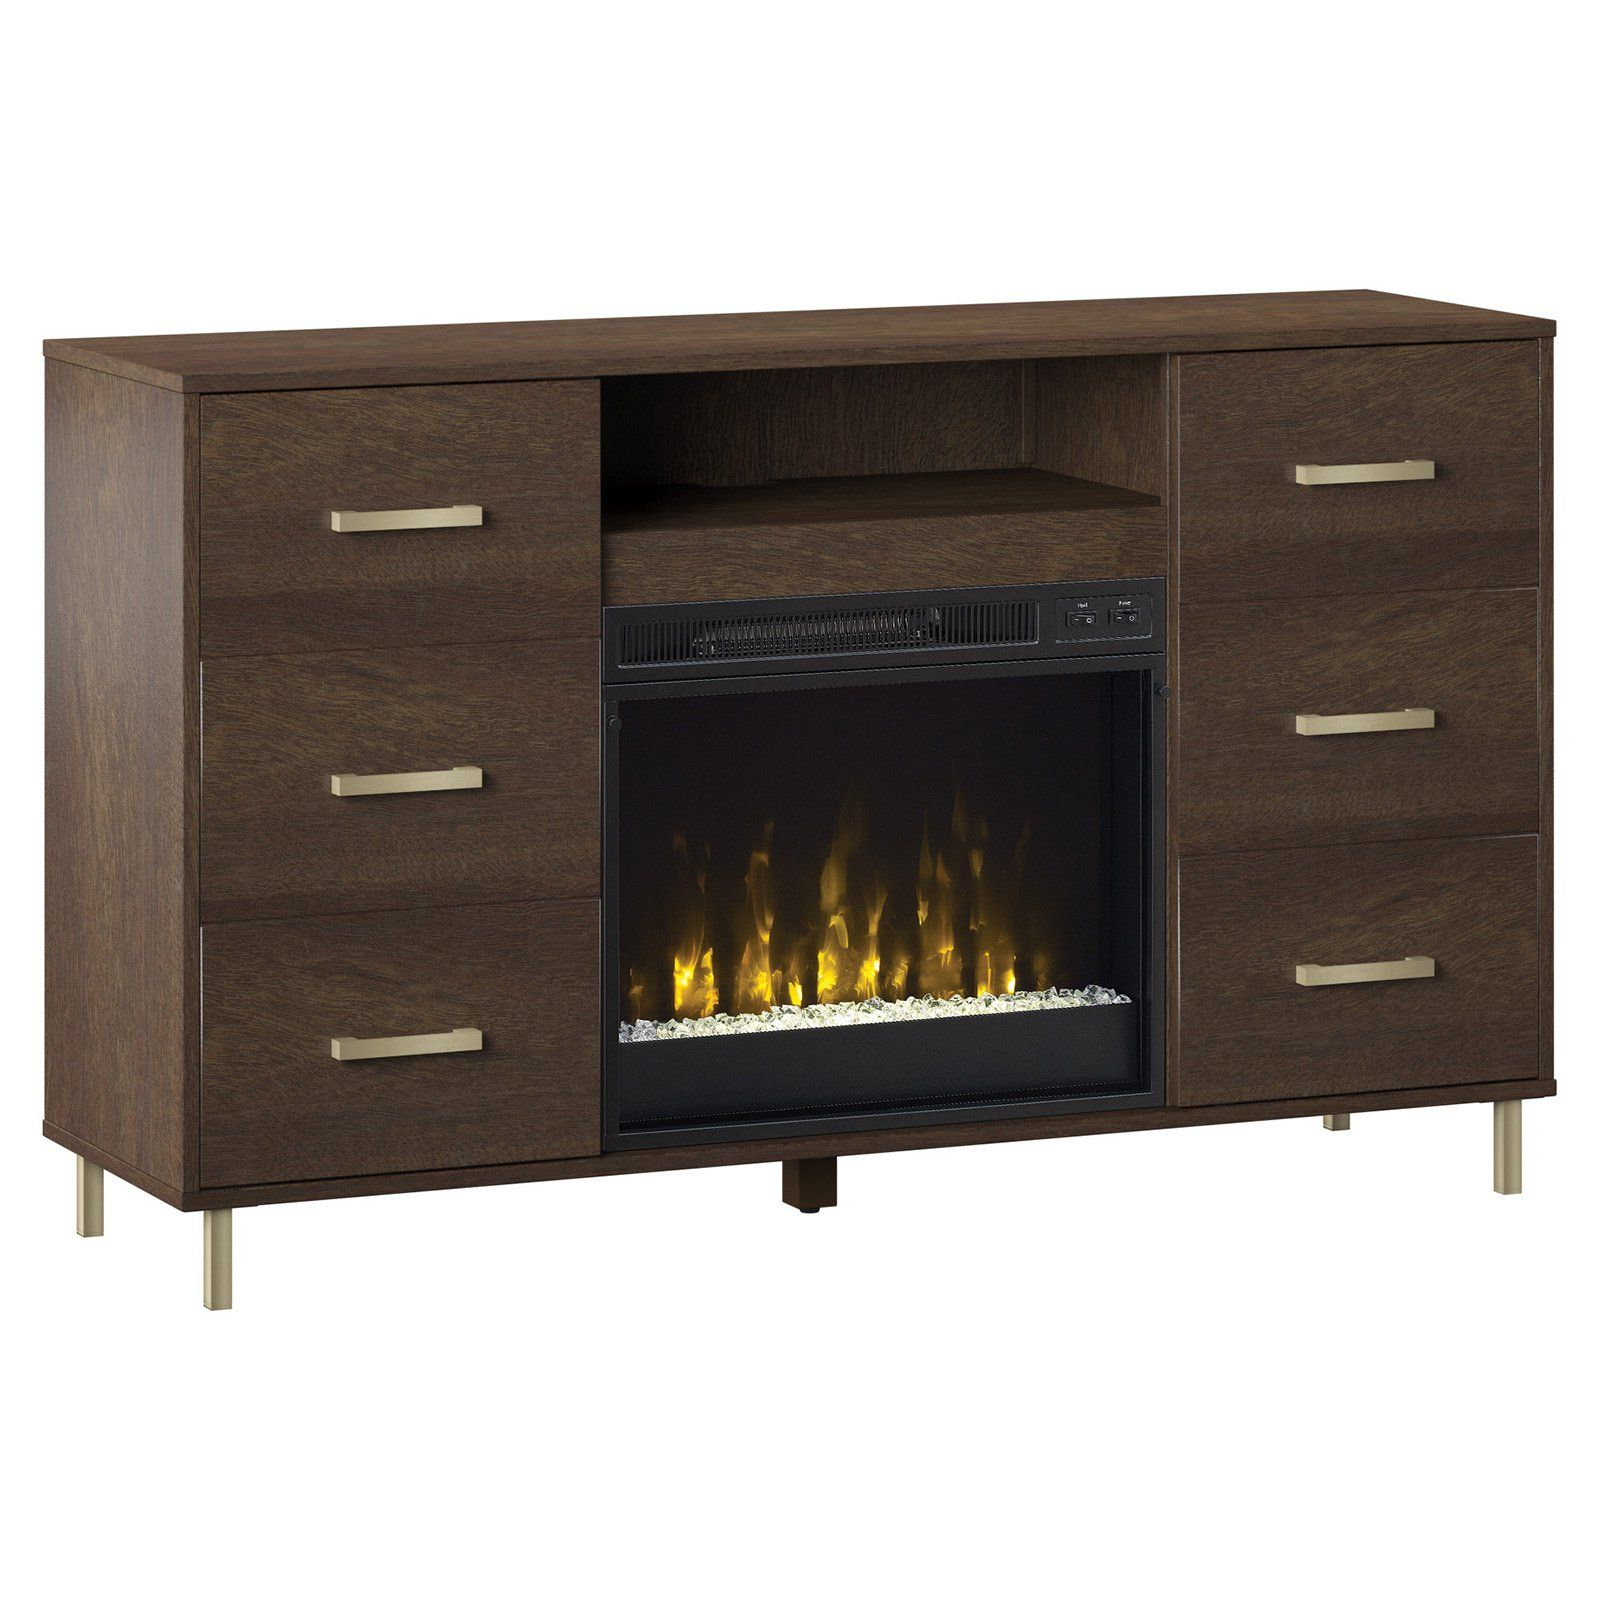 Twin Star Media Mantel Fireplace With Infrared Quartz Heater And